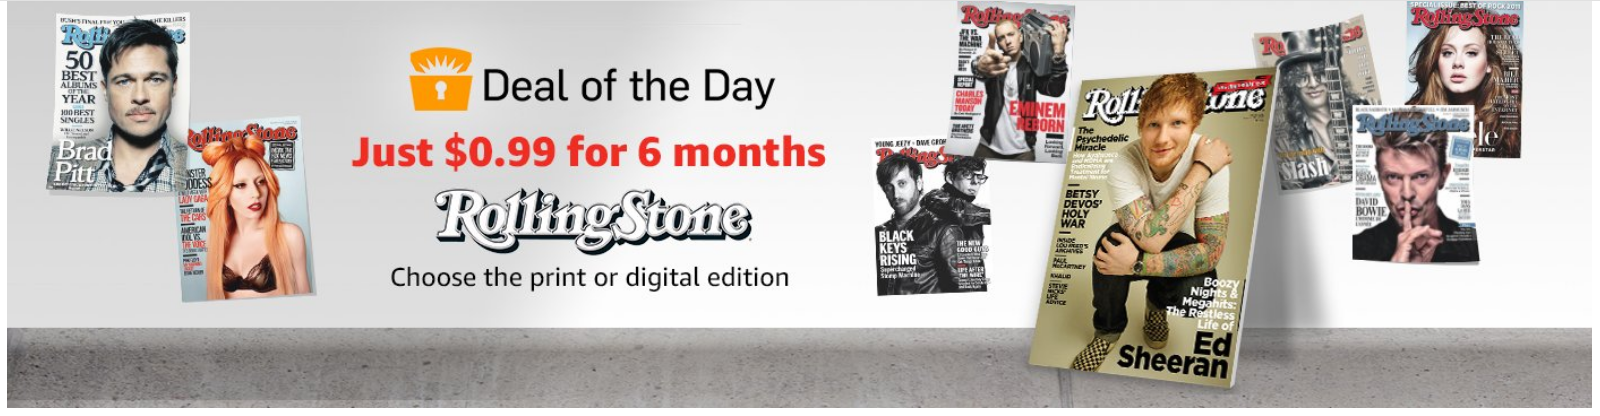 Rolling Stone Magazine Deal